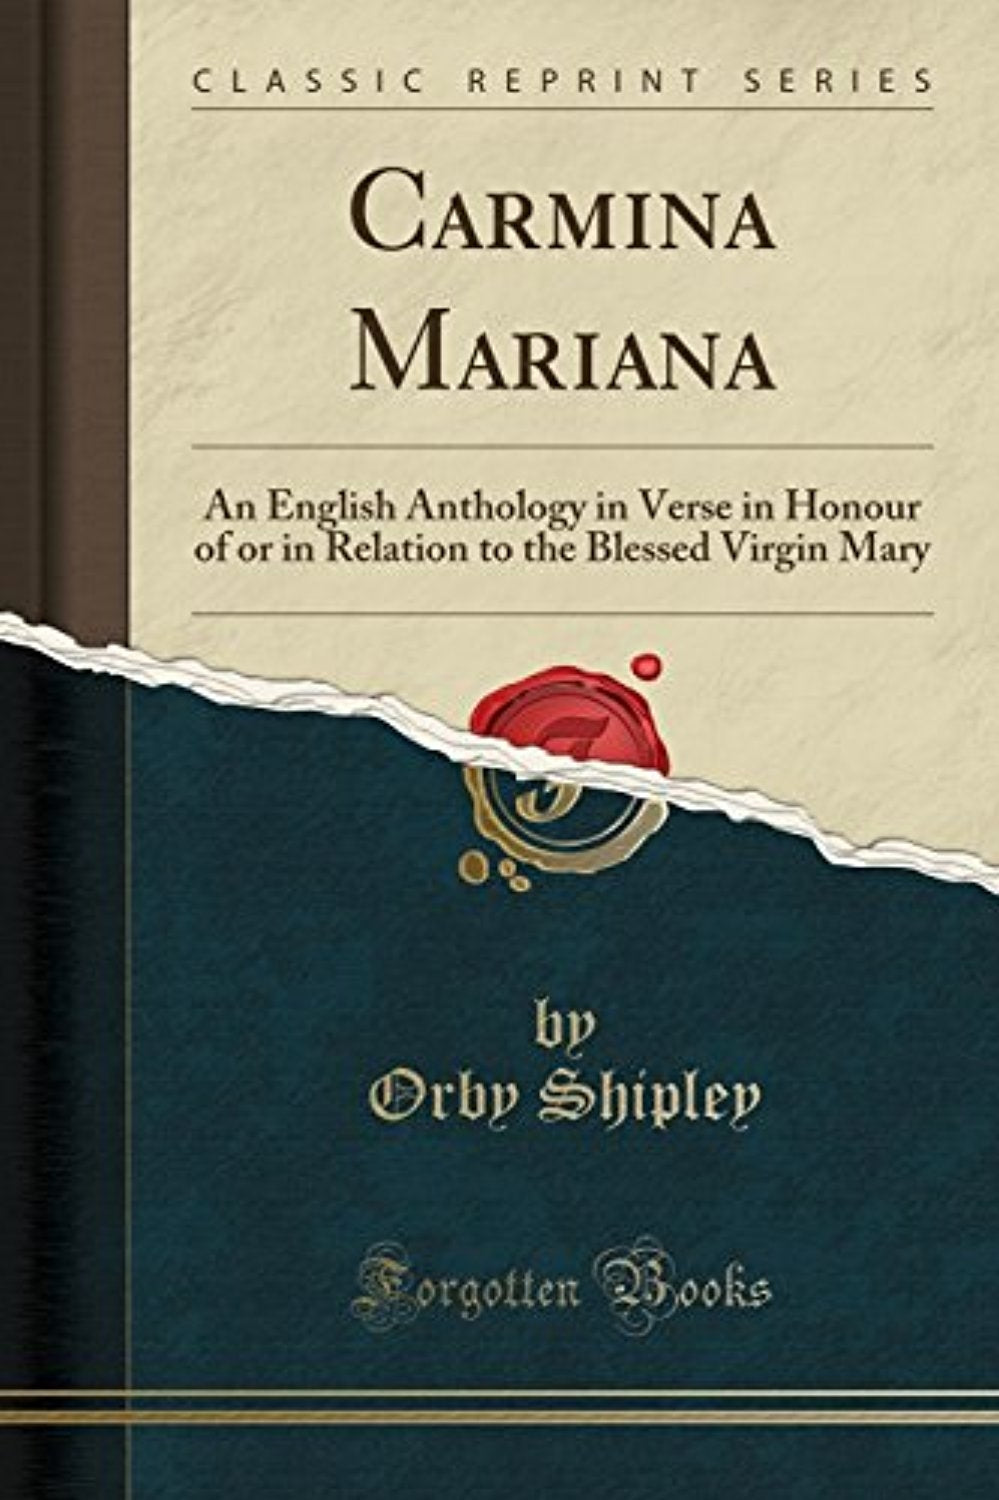 Carmina Mariana: An English Anthology in Verse in Honour of or in Relation to the Blessed Virgin Mary (Classic Reprint)